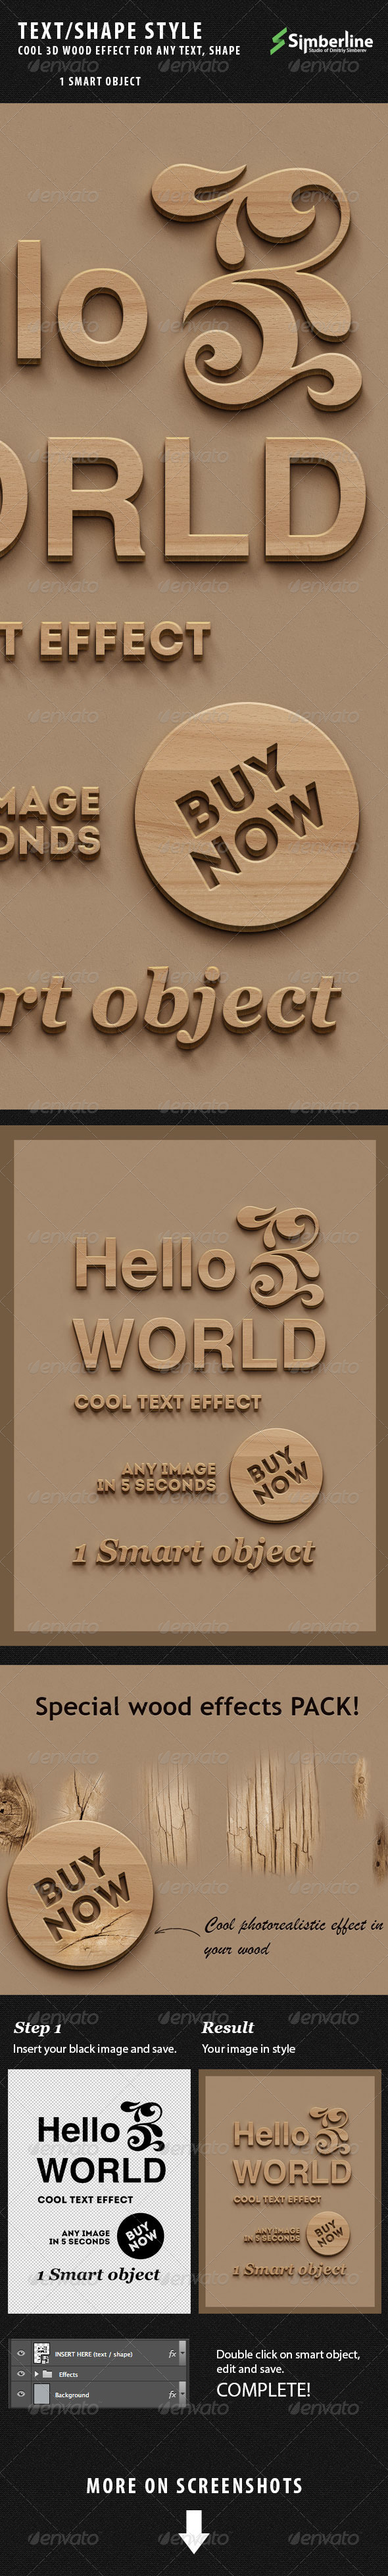 GraphicRiver Wall MockUp Wood Style 6487225